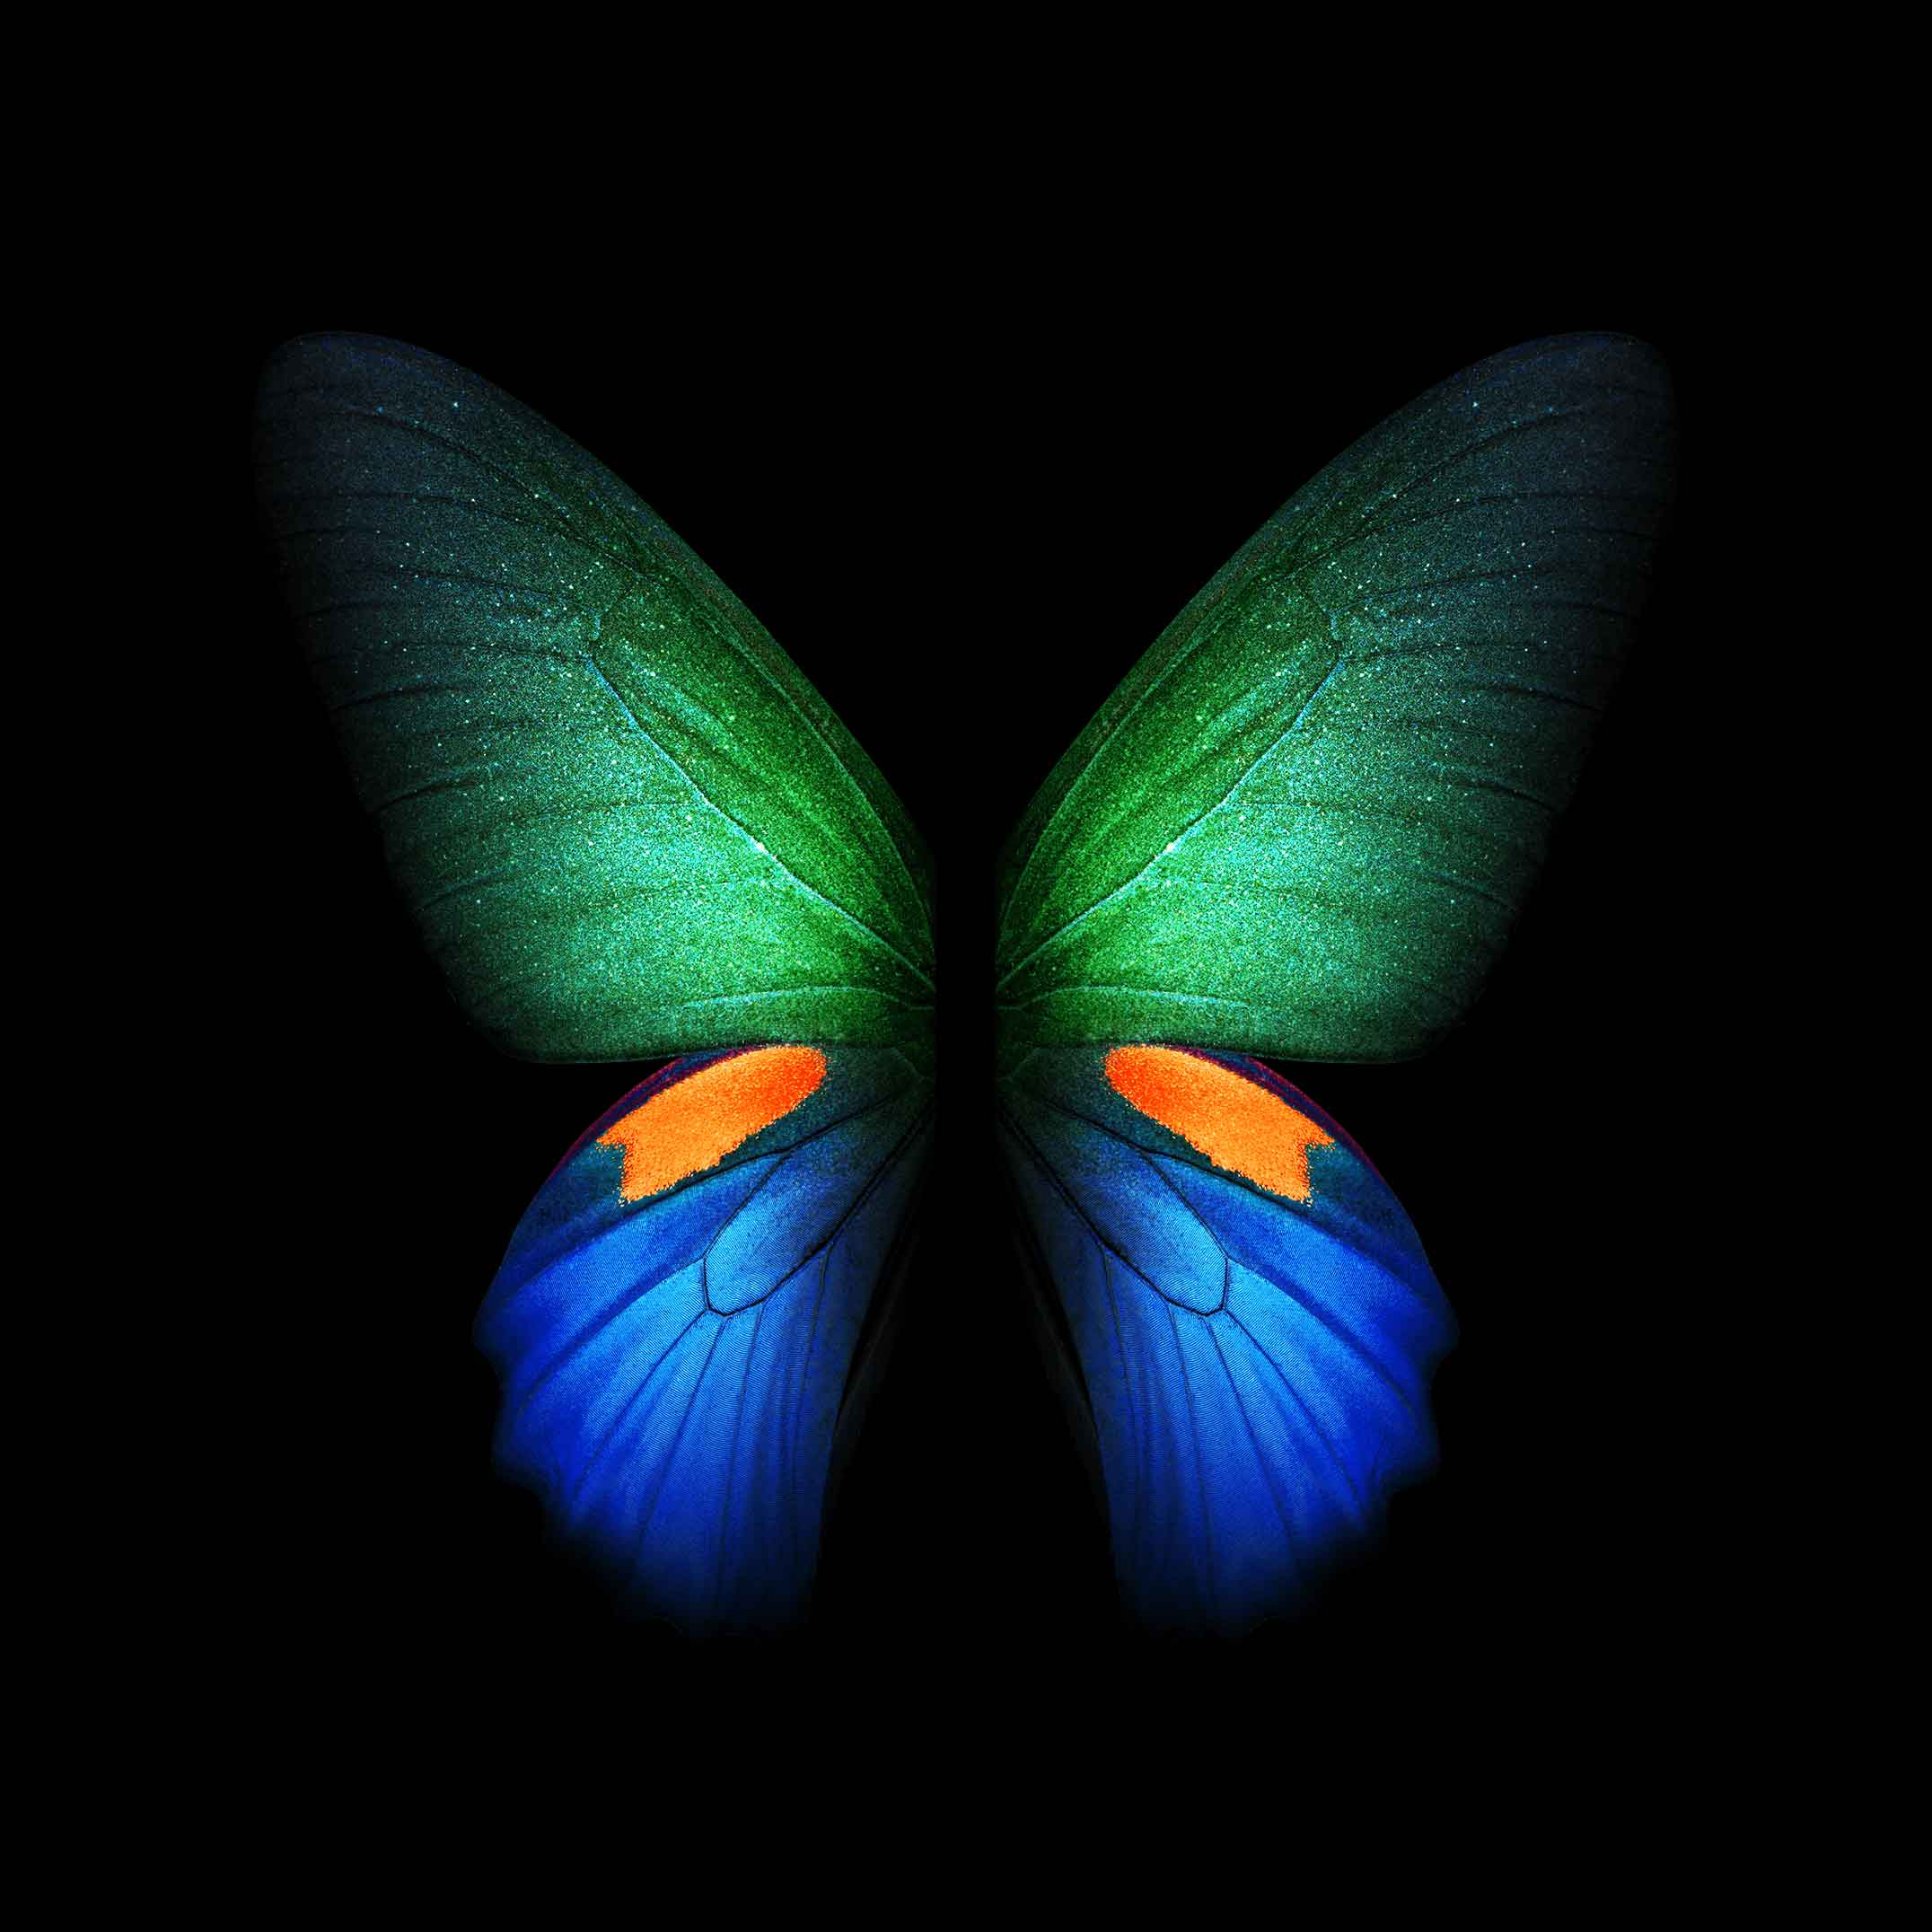 Download Galaxy Fold wallpapers and LIVE wallpapers 21522152 2152x2152